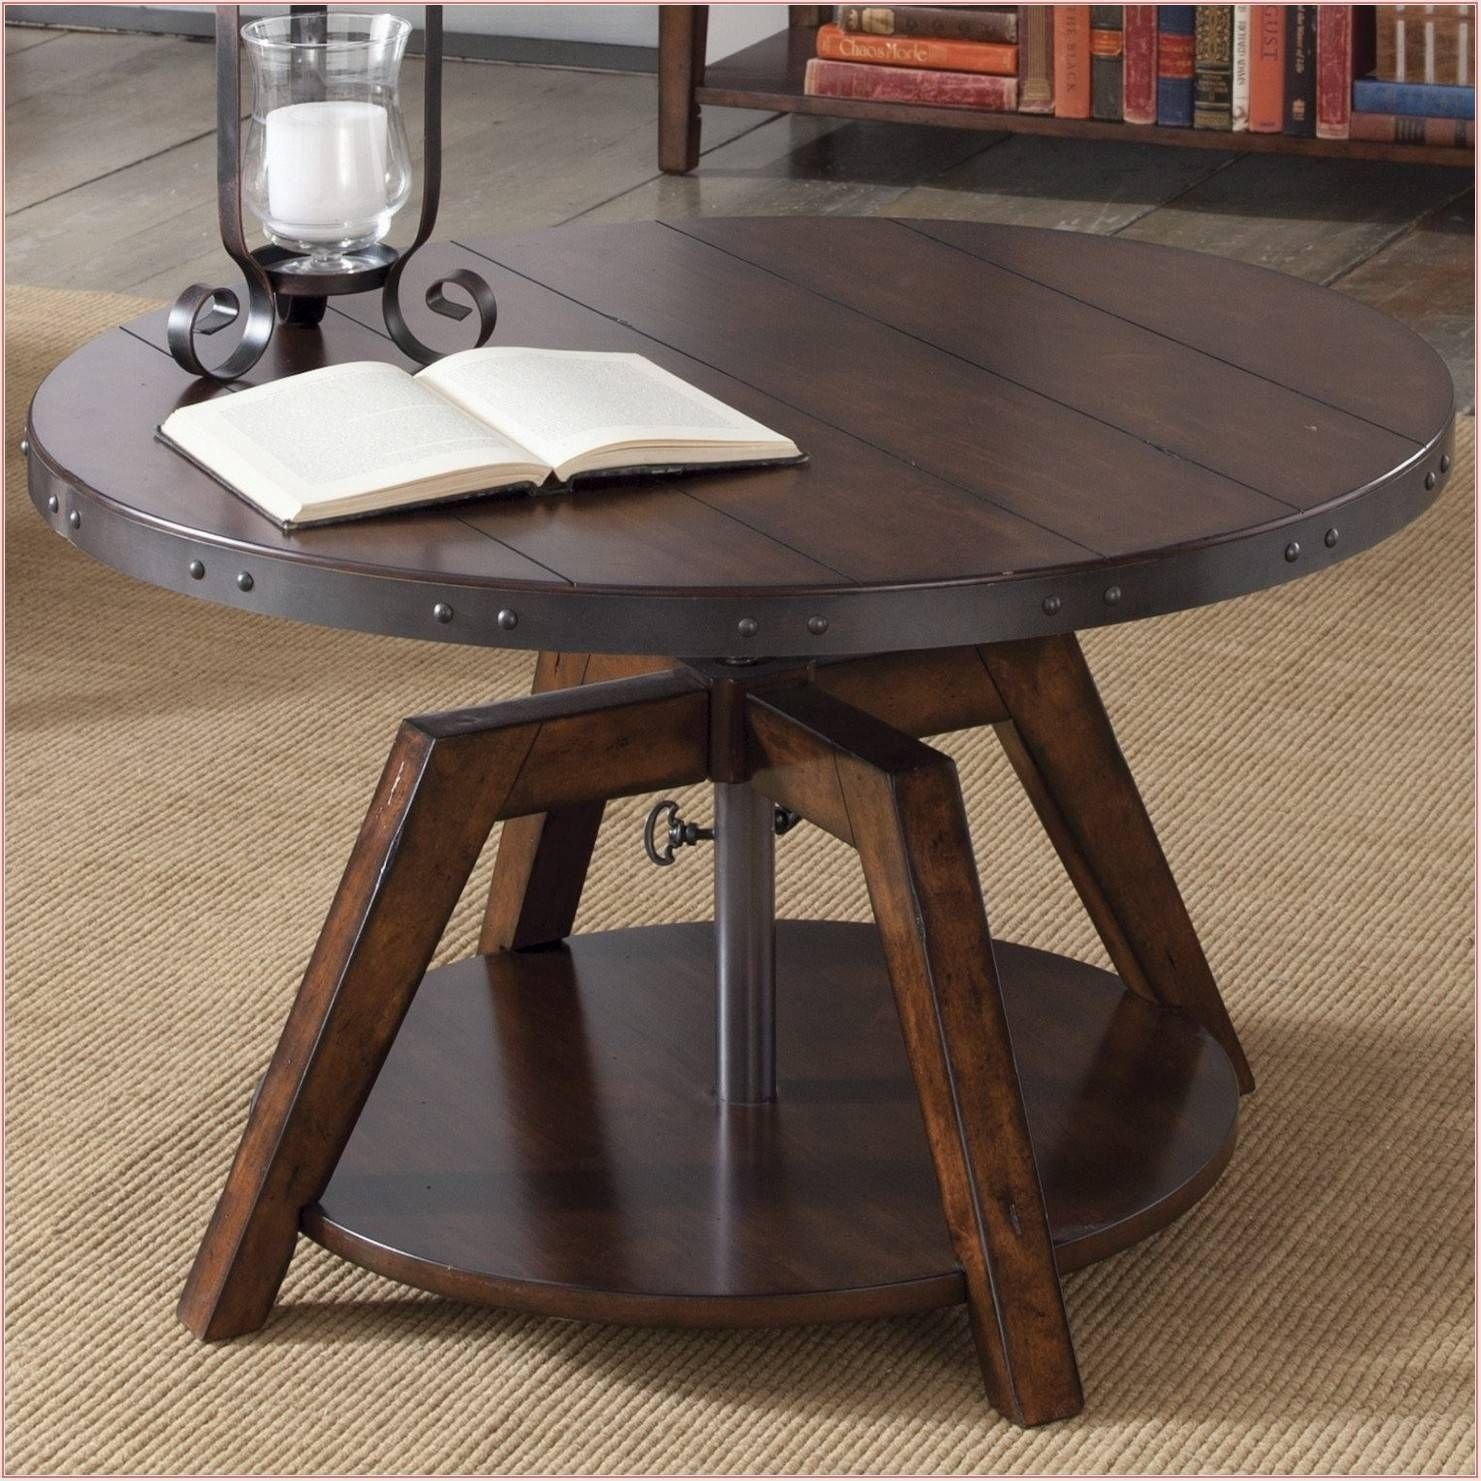 50 Amazing Convertible Coffee Table To Dining Table Up To 70 Off for proportions 1481 X 1481